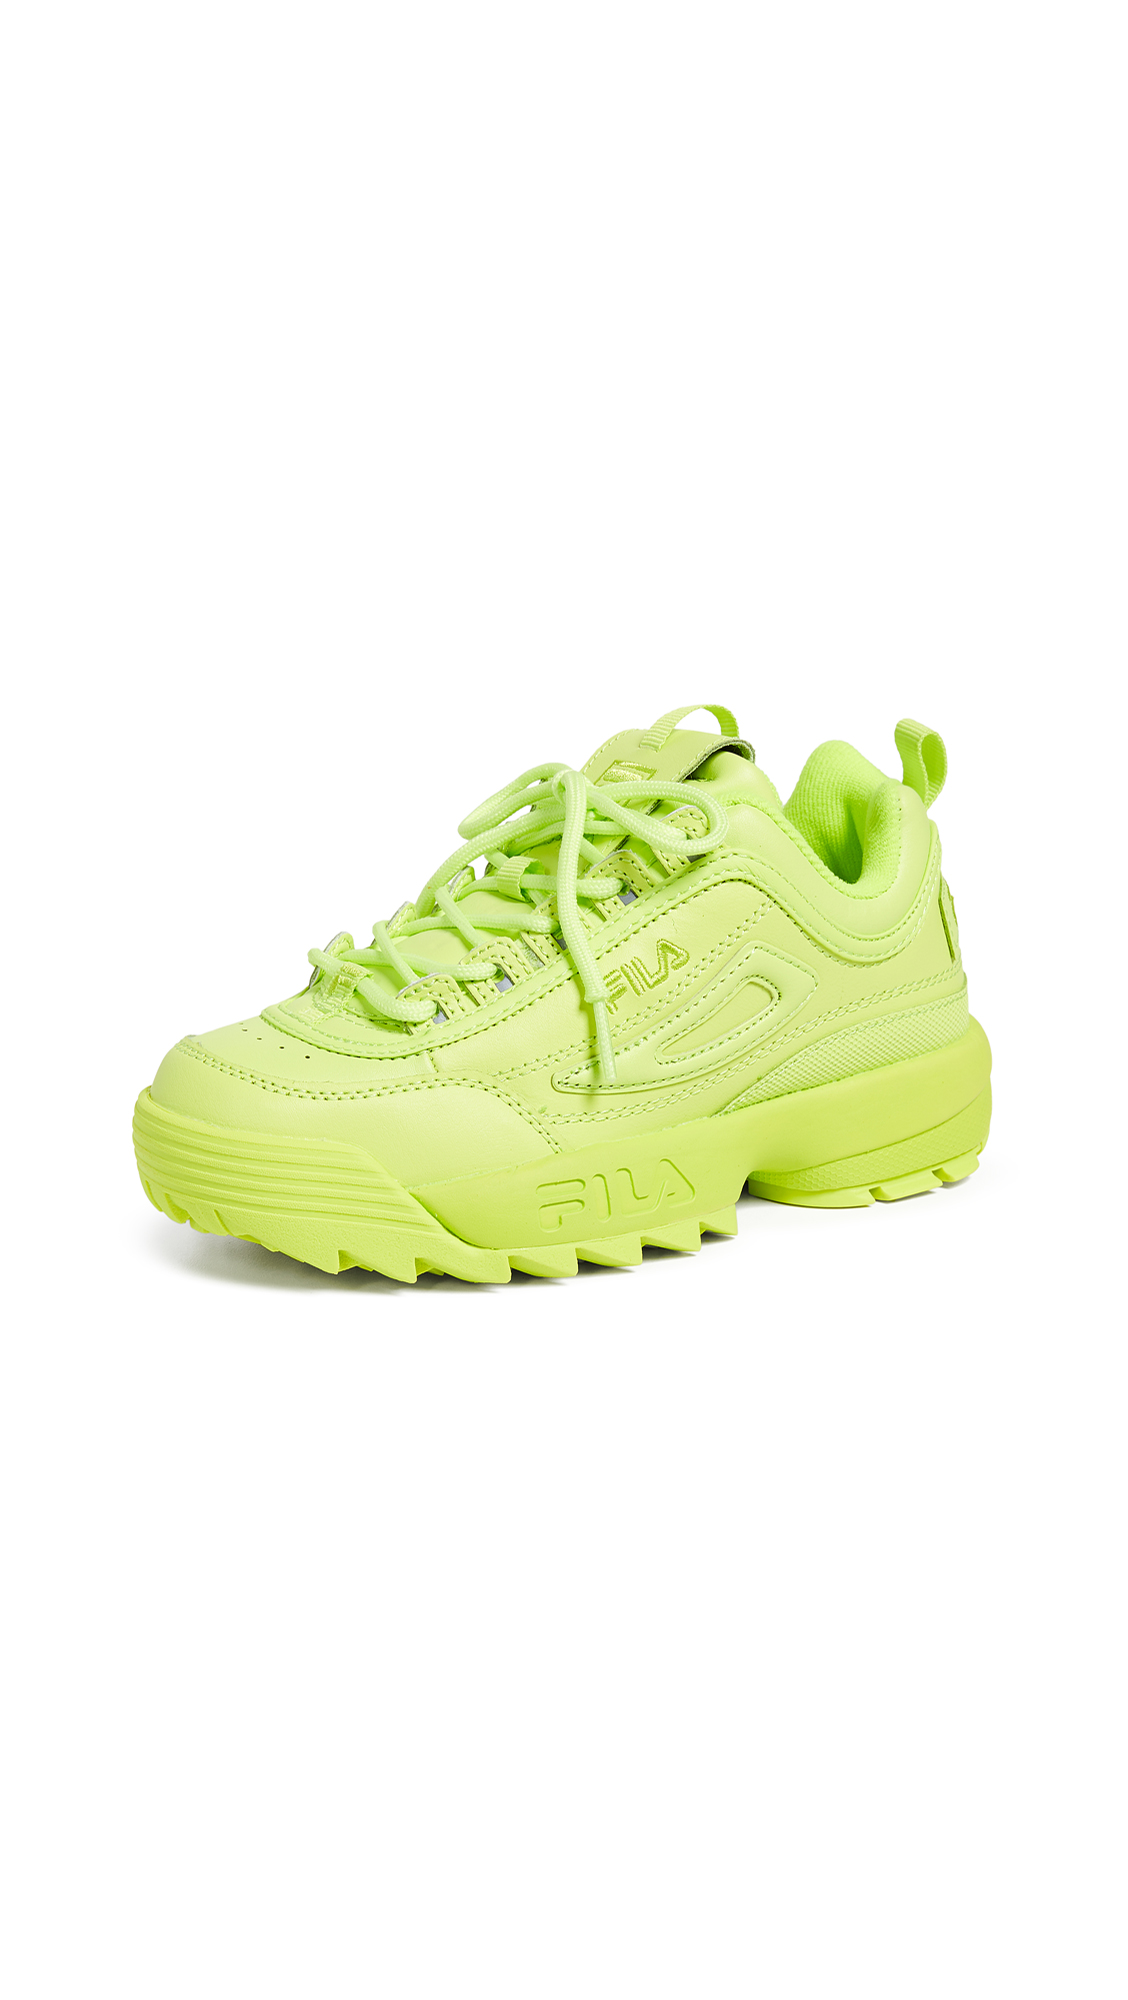 Fila Disruptor II Premium Sneakers - Sharp Green/Sharp Green